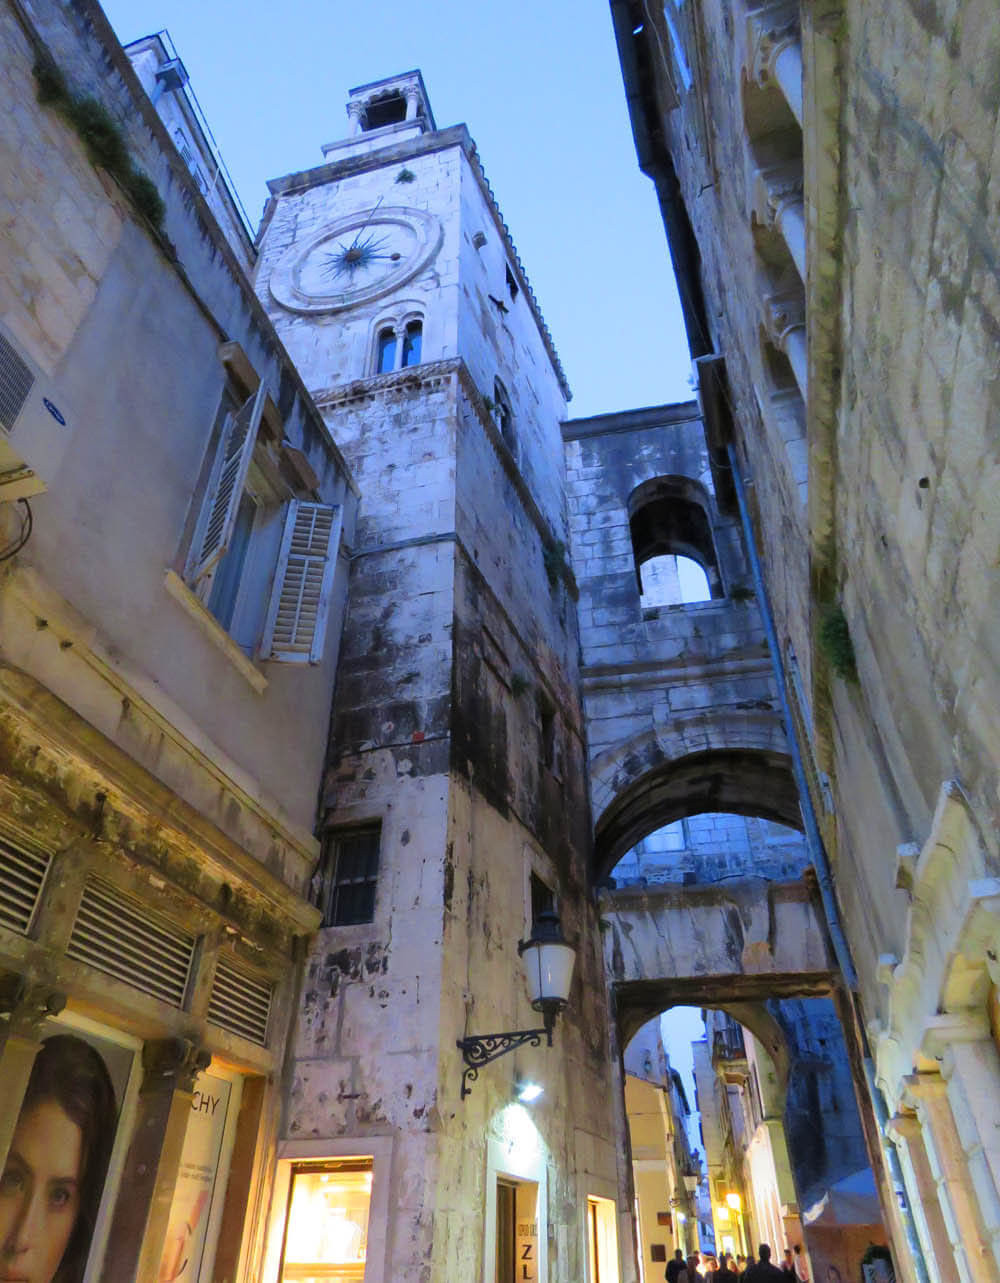 the Iron Gate of Diocletian's Palace